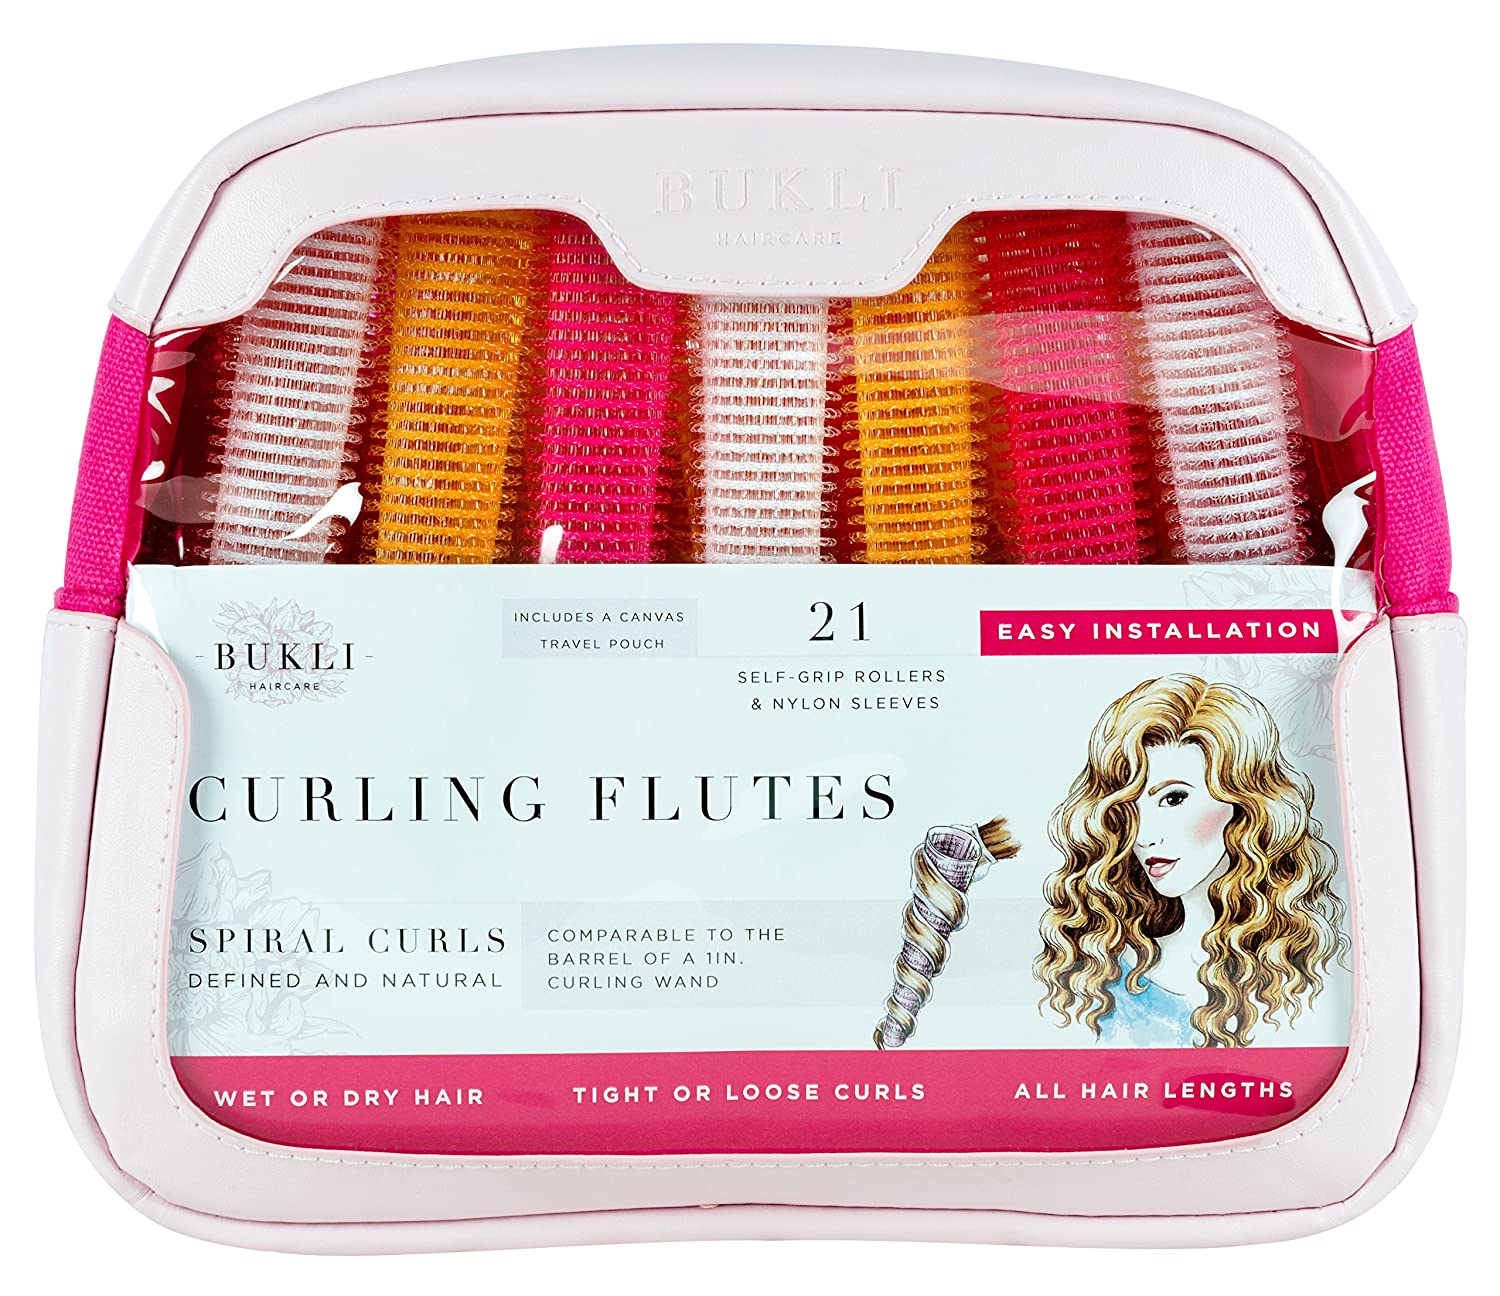 Curling Flutes, Long Self-Grip Hair Rollers for Spiral Curls, 21 Count, Deluxe PU Leather Bag + Canvas Pouch by Bukli Haircare CF-02-PNK213